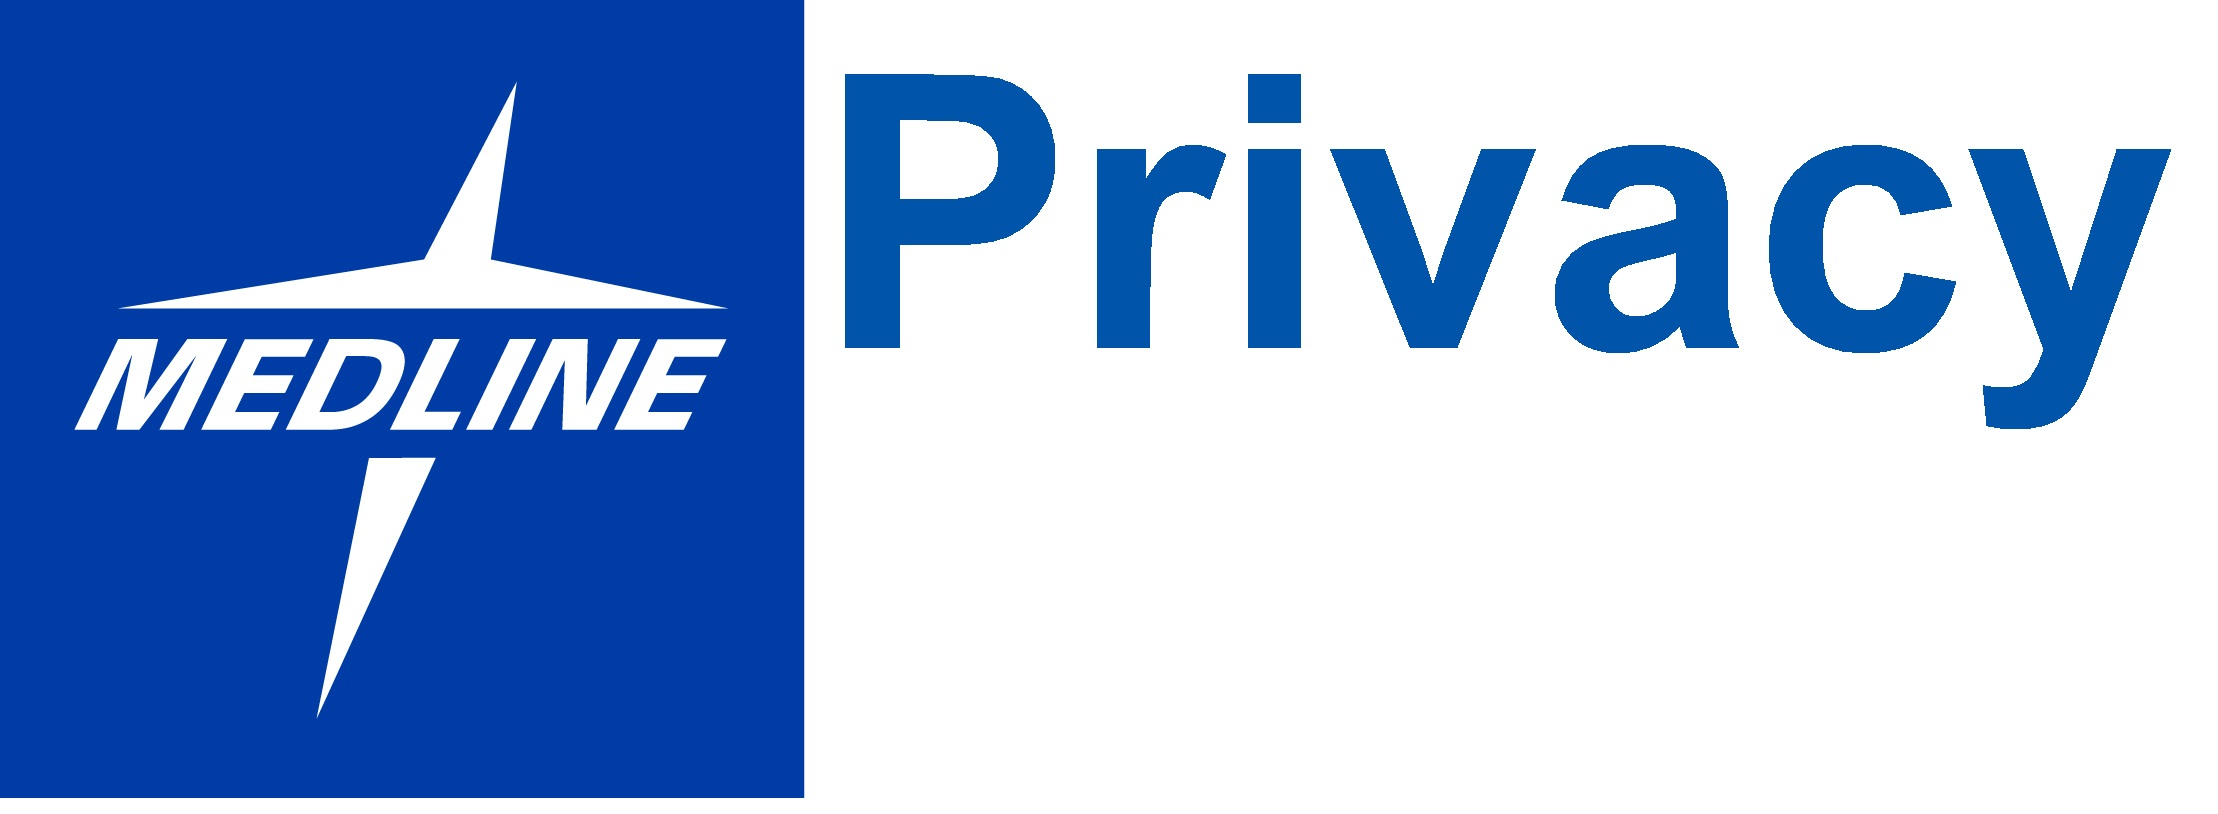 Medline Privacy Help Center home page